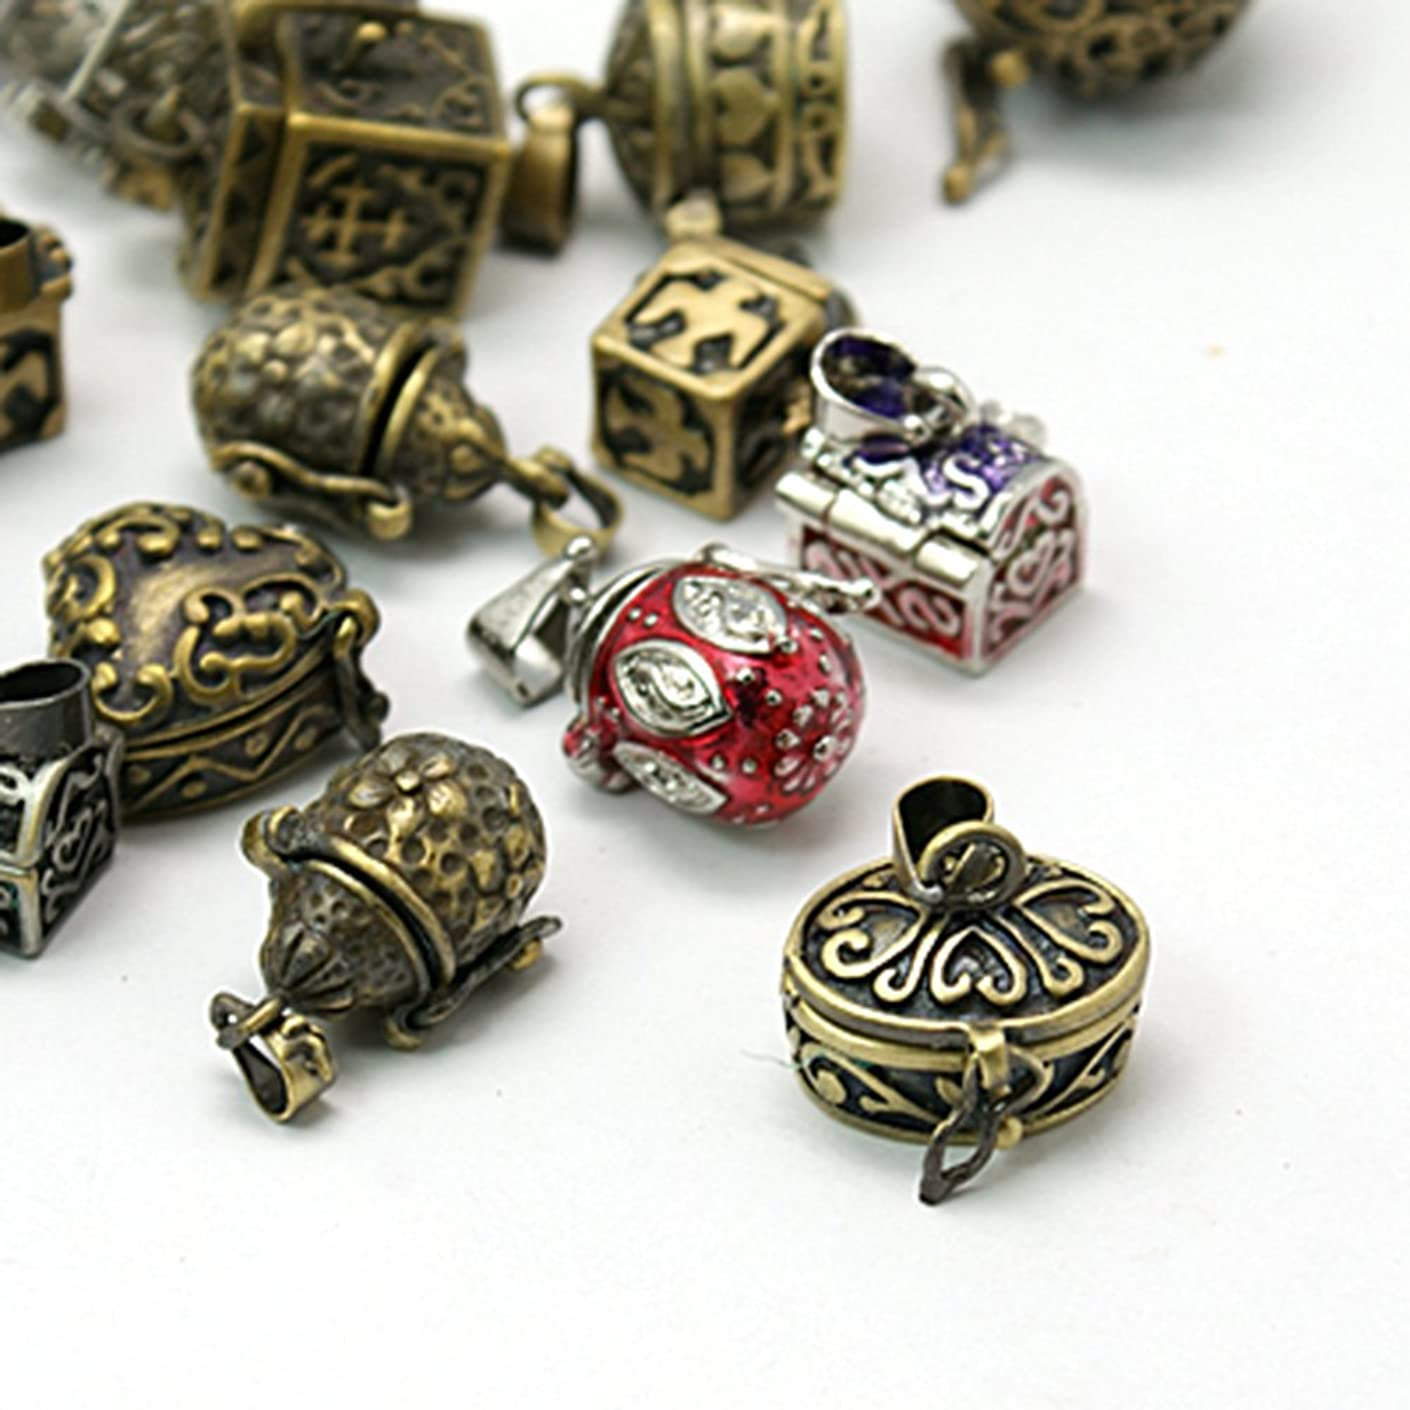 arricraft 10pcs Brass Prayer Box Pendants for Jewelry Making and Garment Decoration, Mixed Shape and Mixed Color